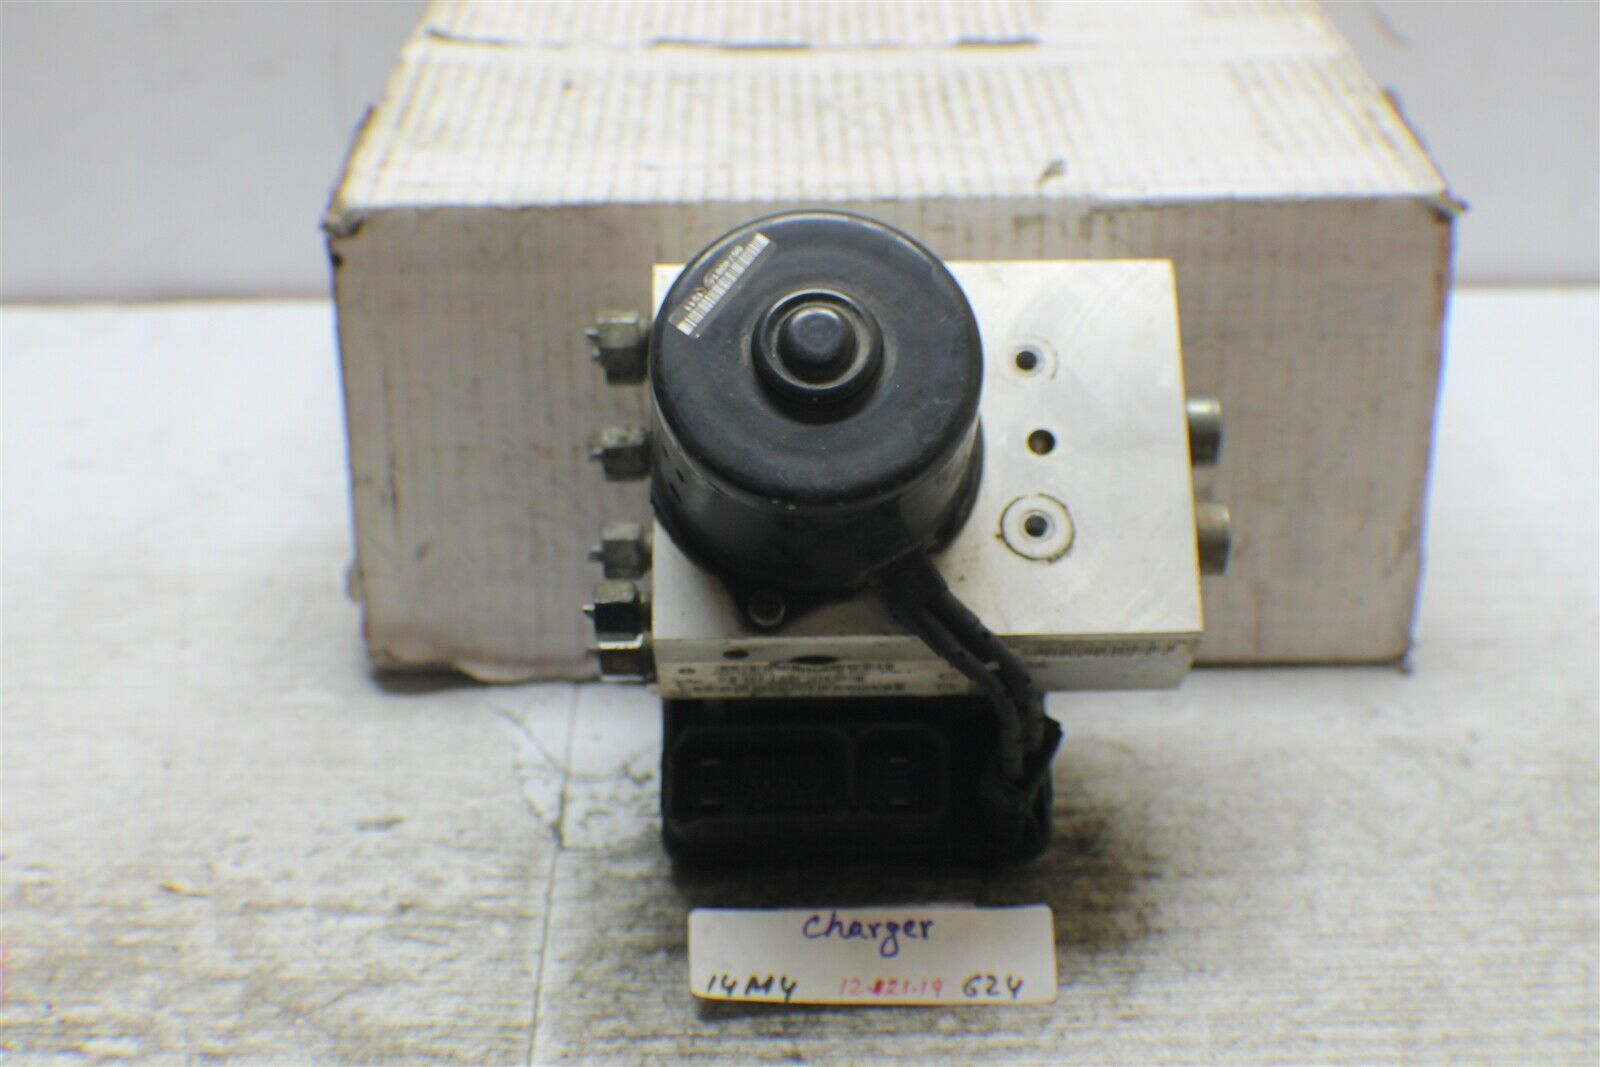 Primary image for 2004-2005 Chevrolet Concord ABS Pump Control OEM 4779149 Module 624 14M4